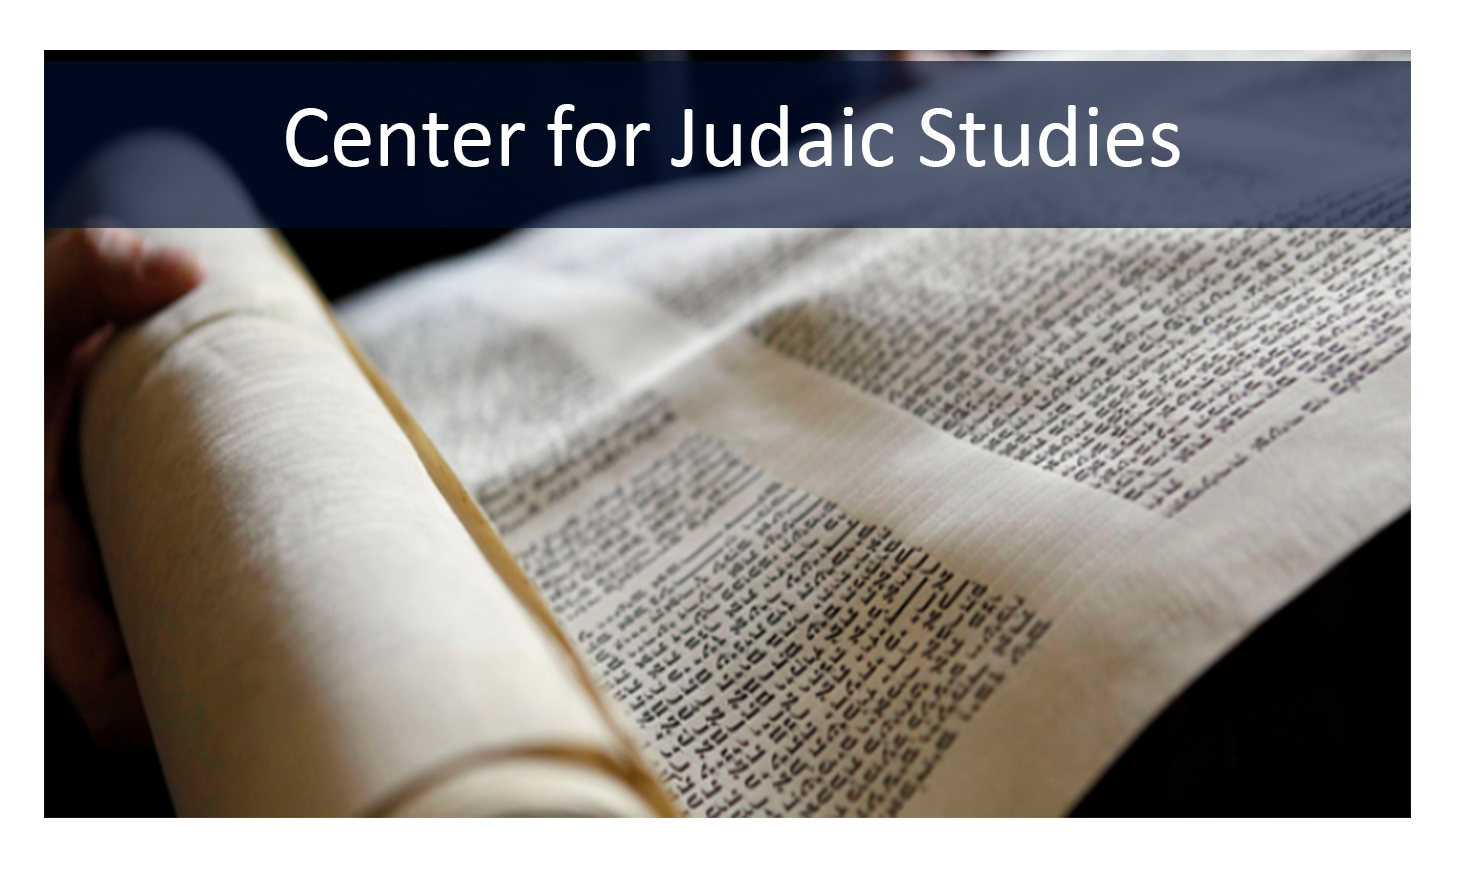 Center for Judaic Studies